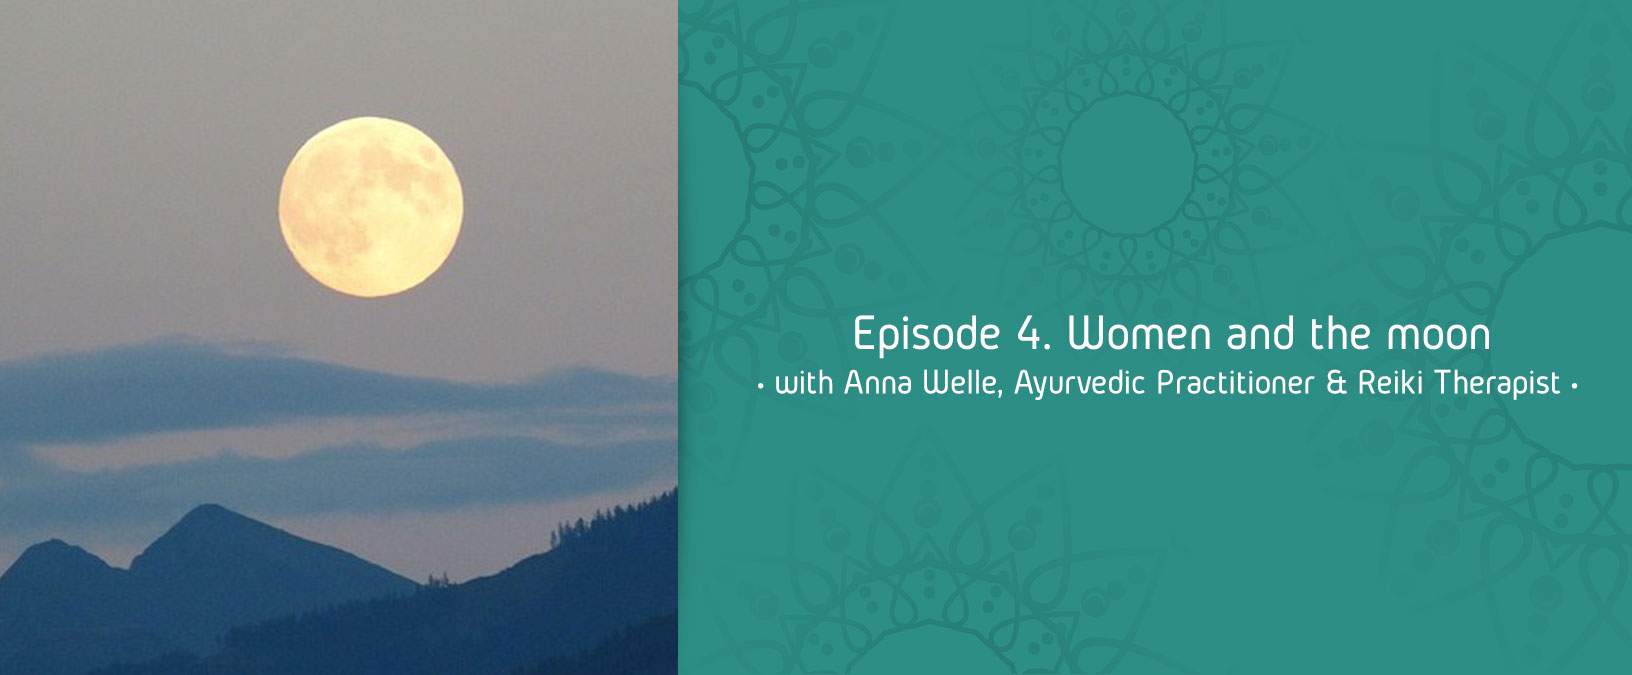 Episode 4. Women and the Moon